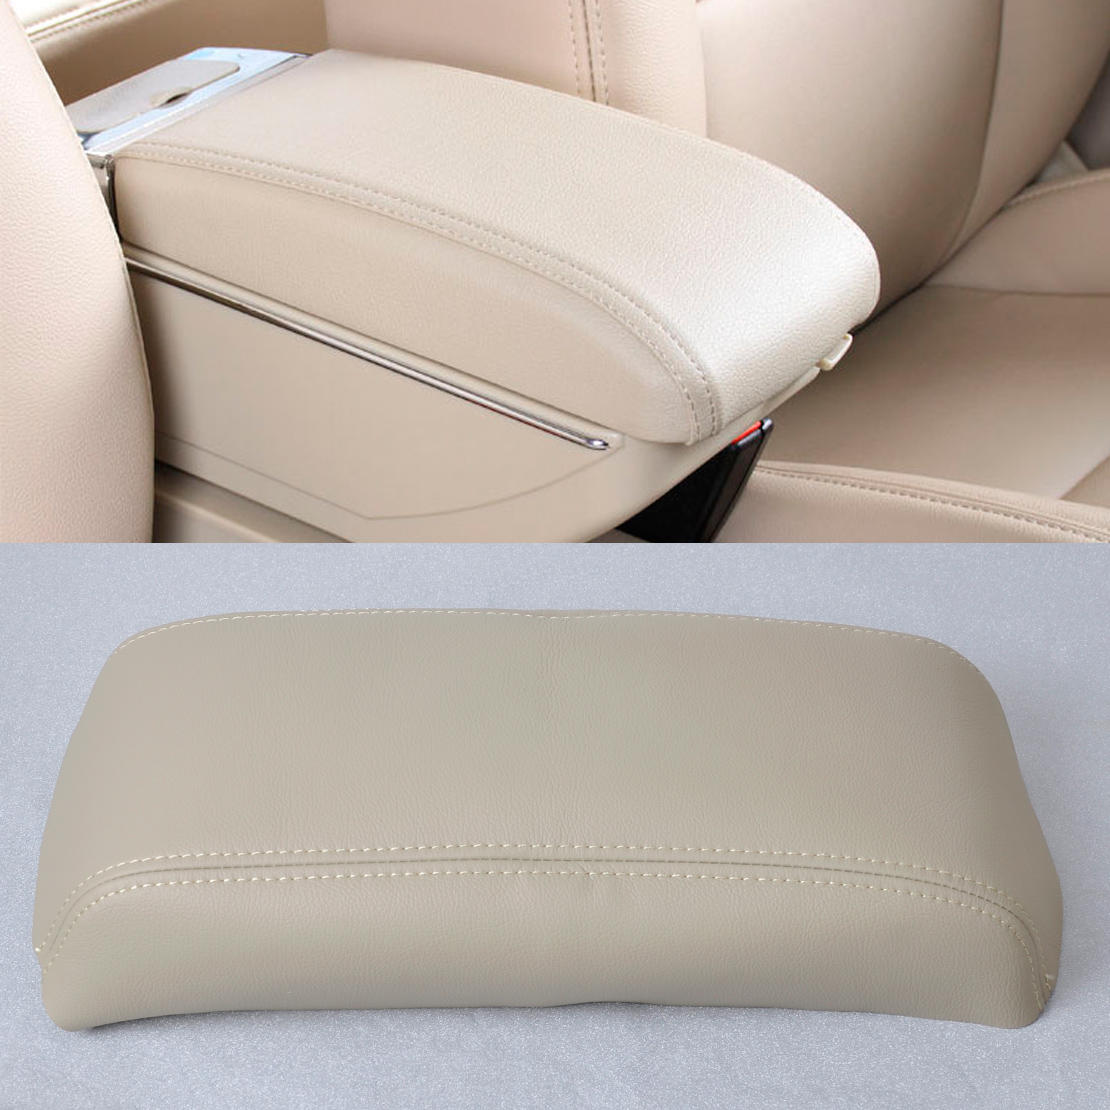 2014 honda accord custom seat covers leather camo autos post. Black Bedroom Furniture Sets. Home Design Ideas